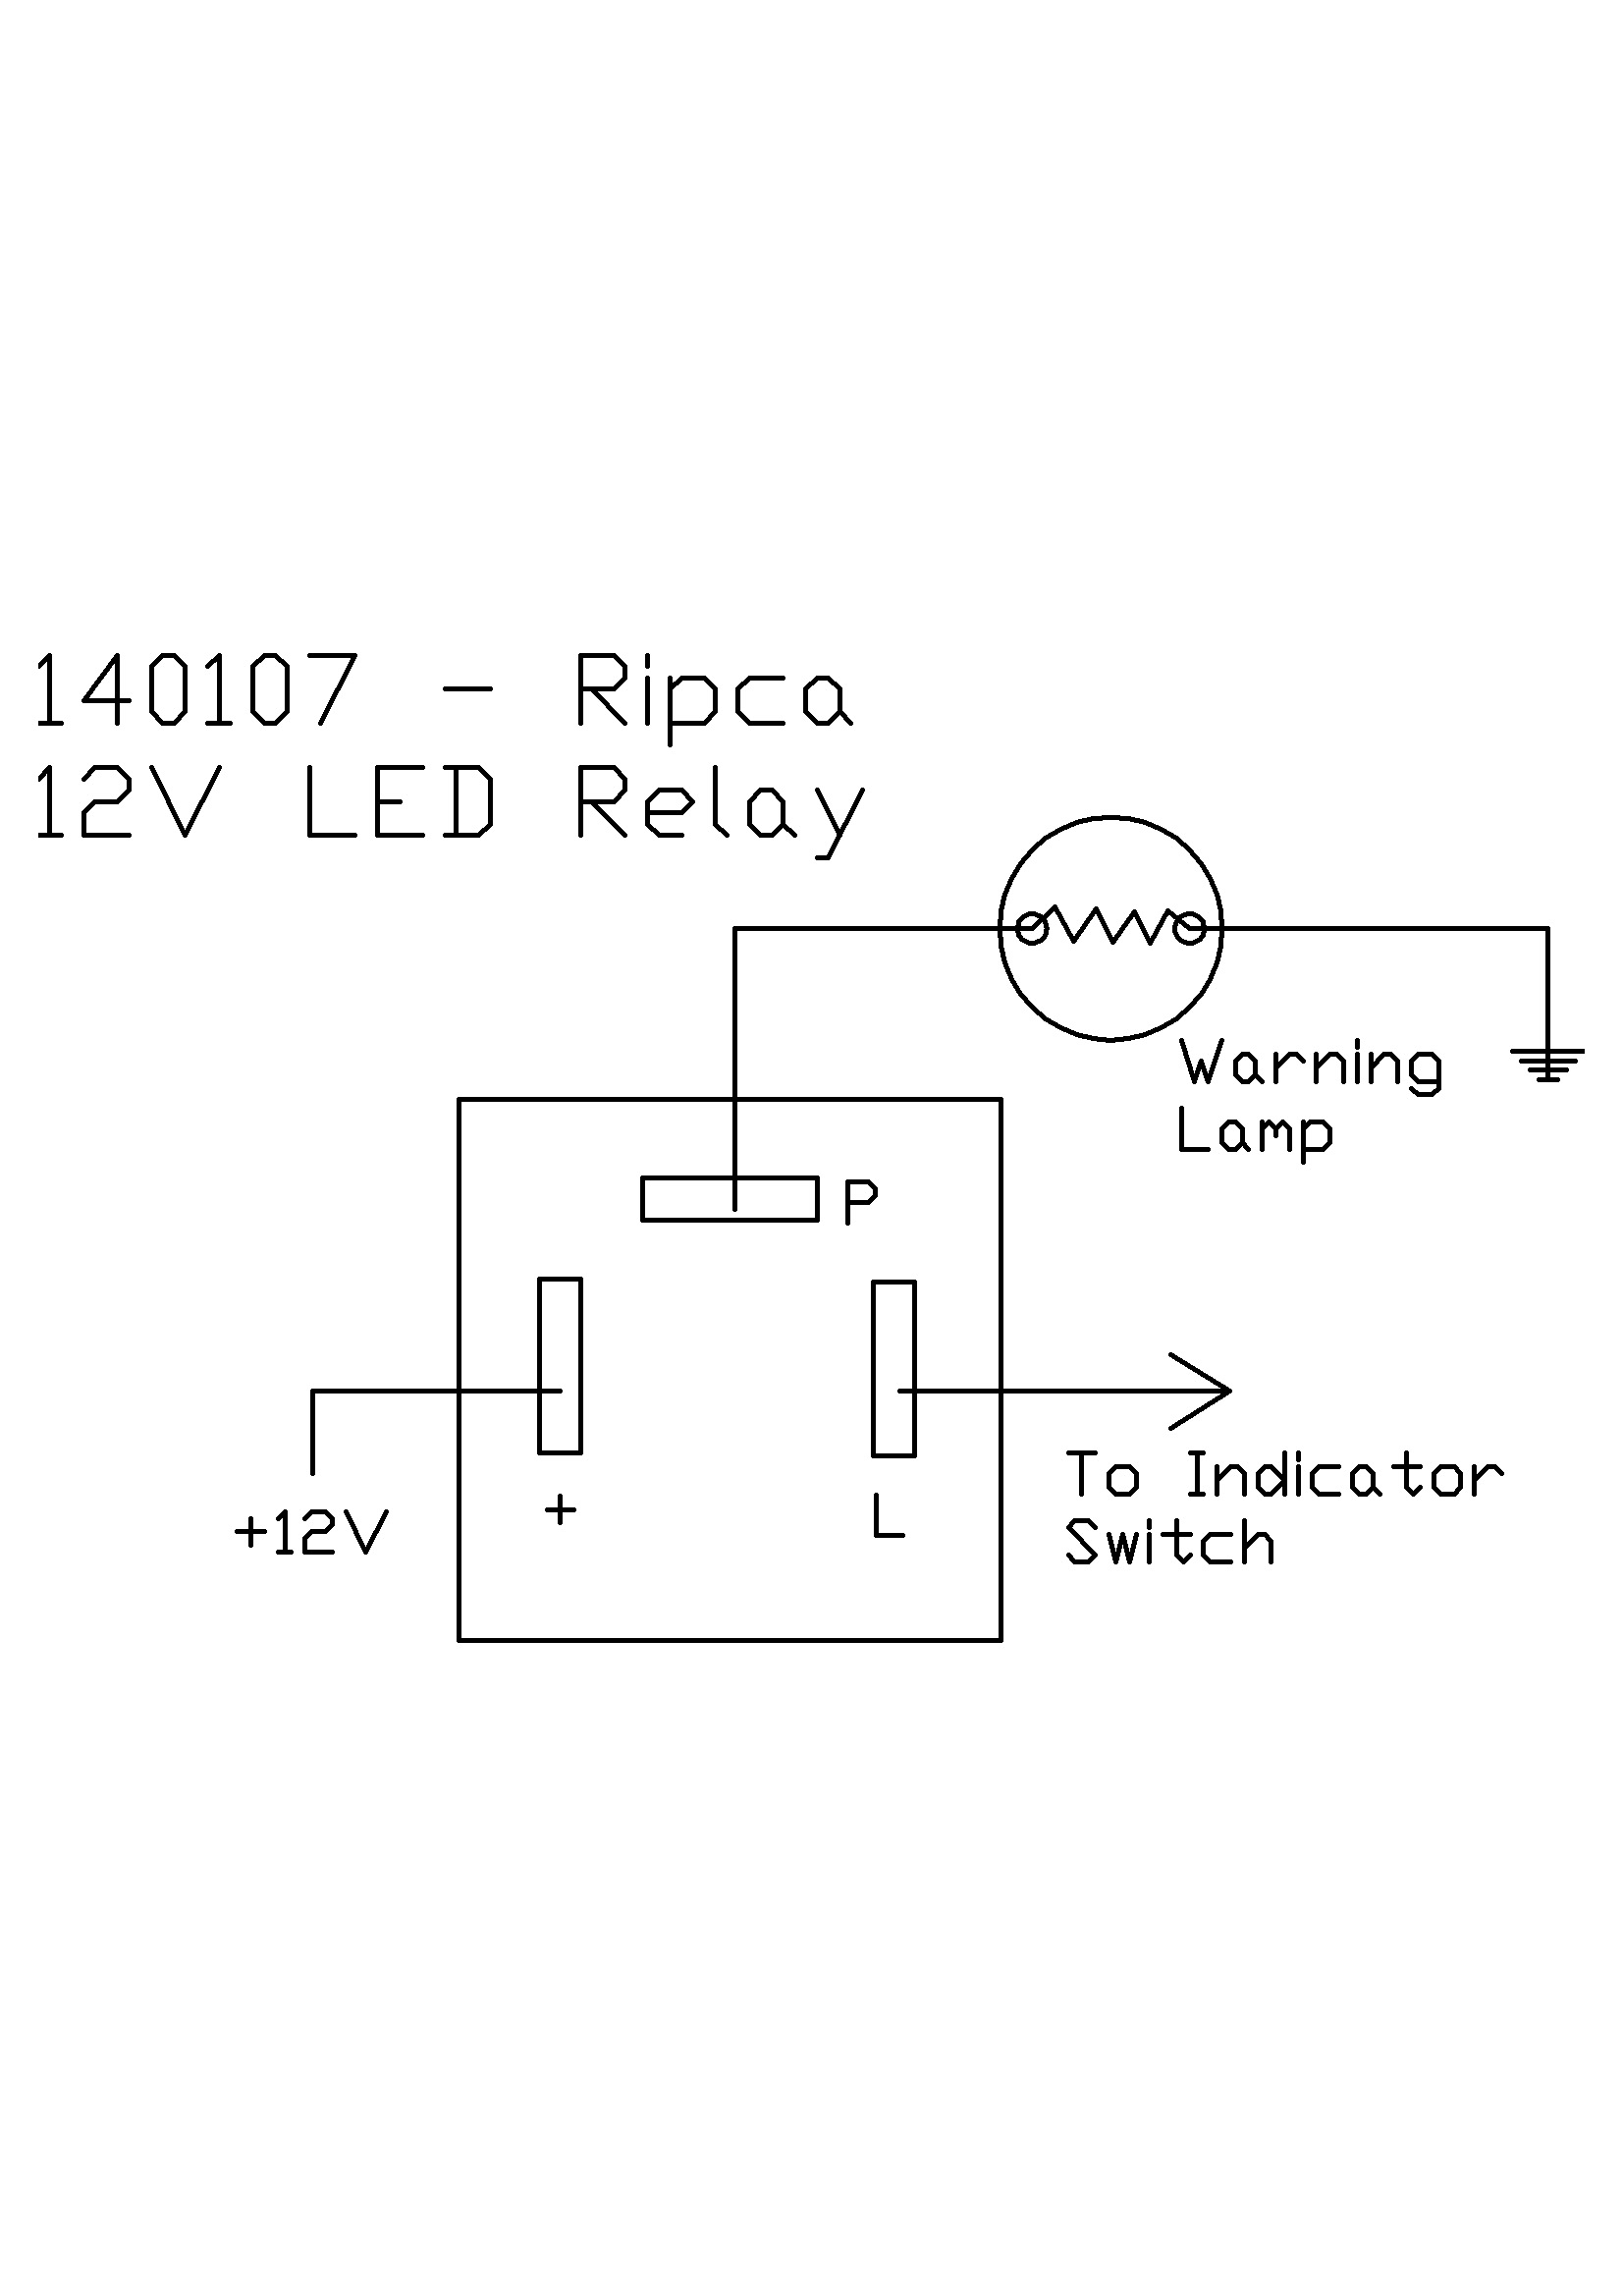 140107 ripca 12 volt led flasher unit flasher unit wiring diagram at creativeand.co